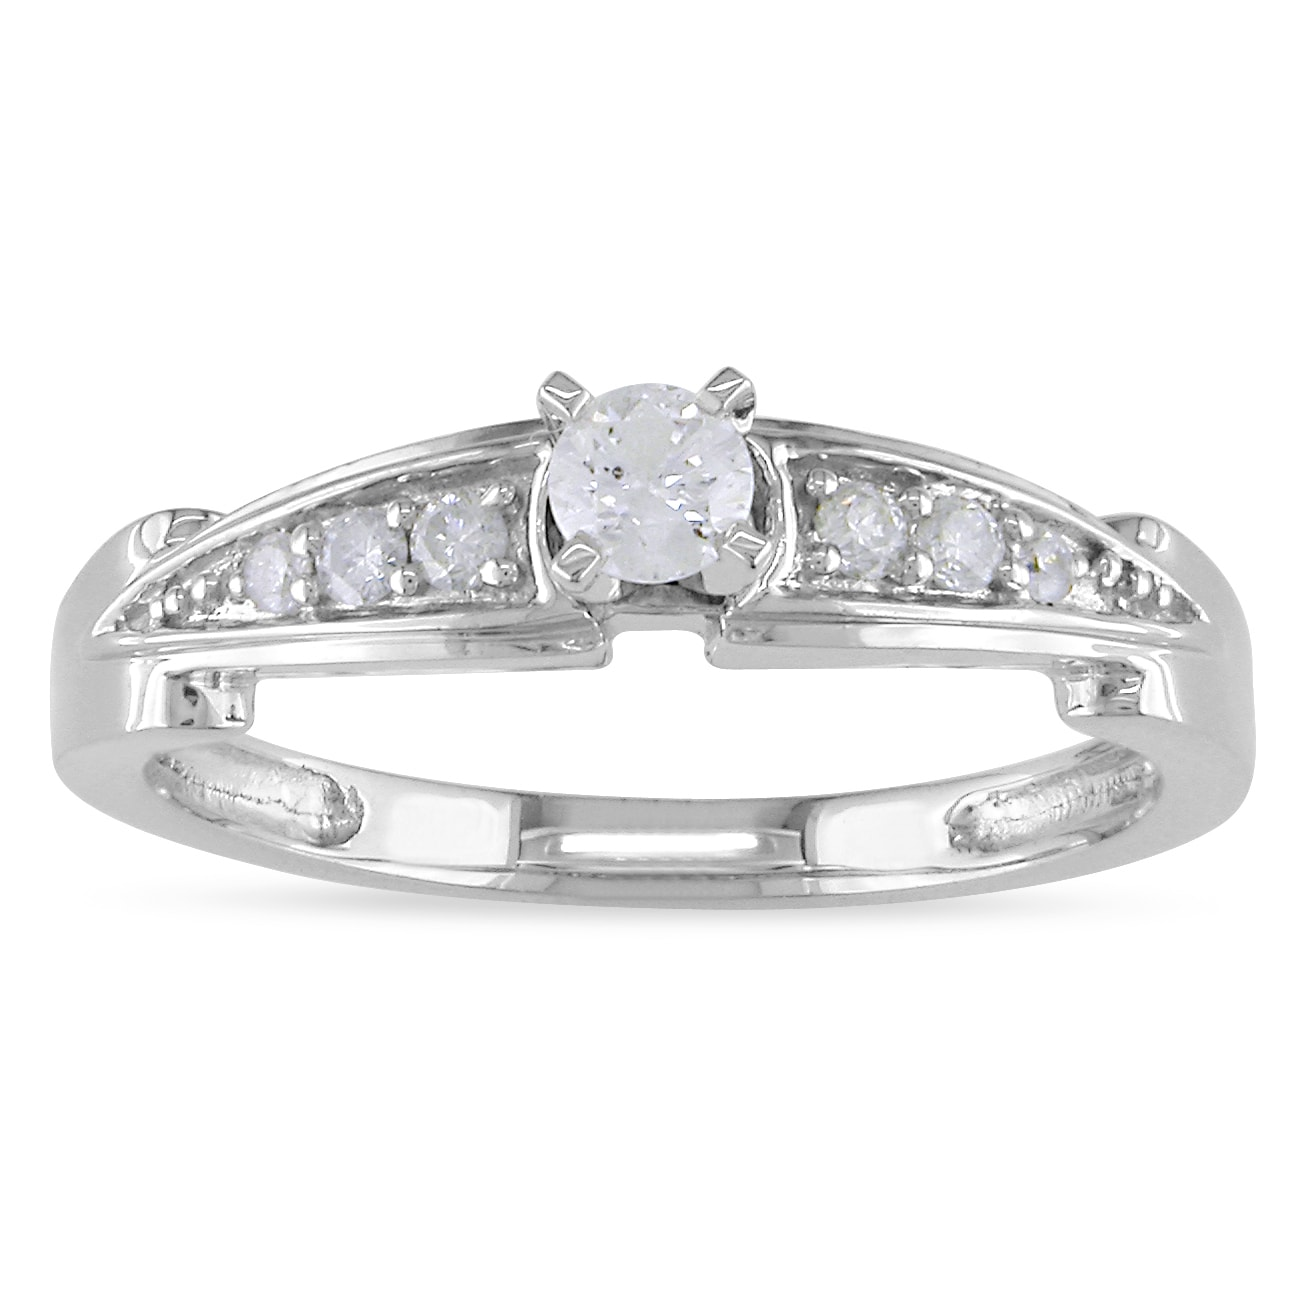 Miadora 14k White Gold 1/4ct TDW Diamond Promise Ring